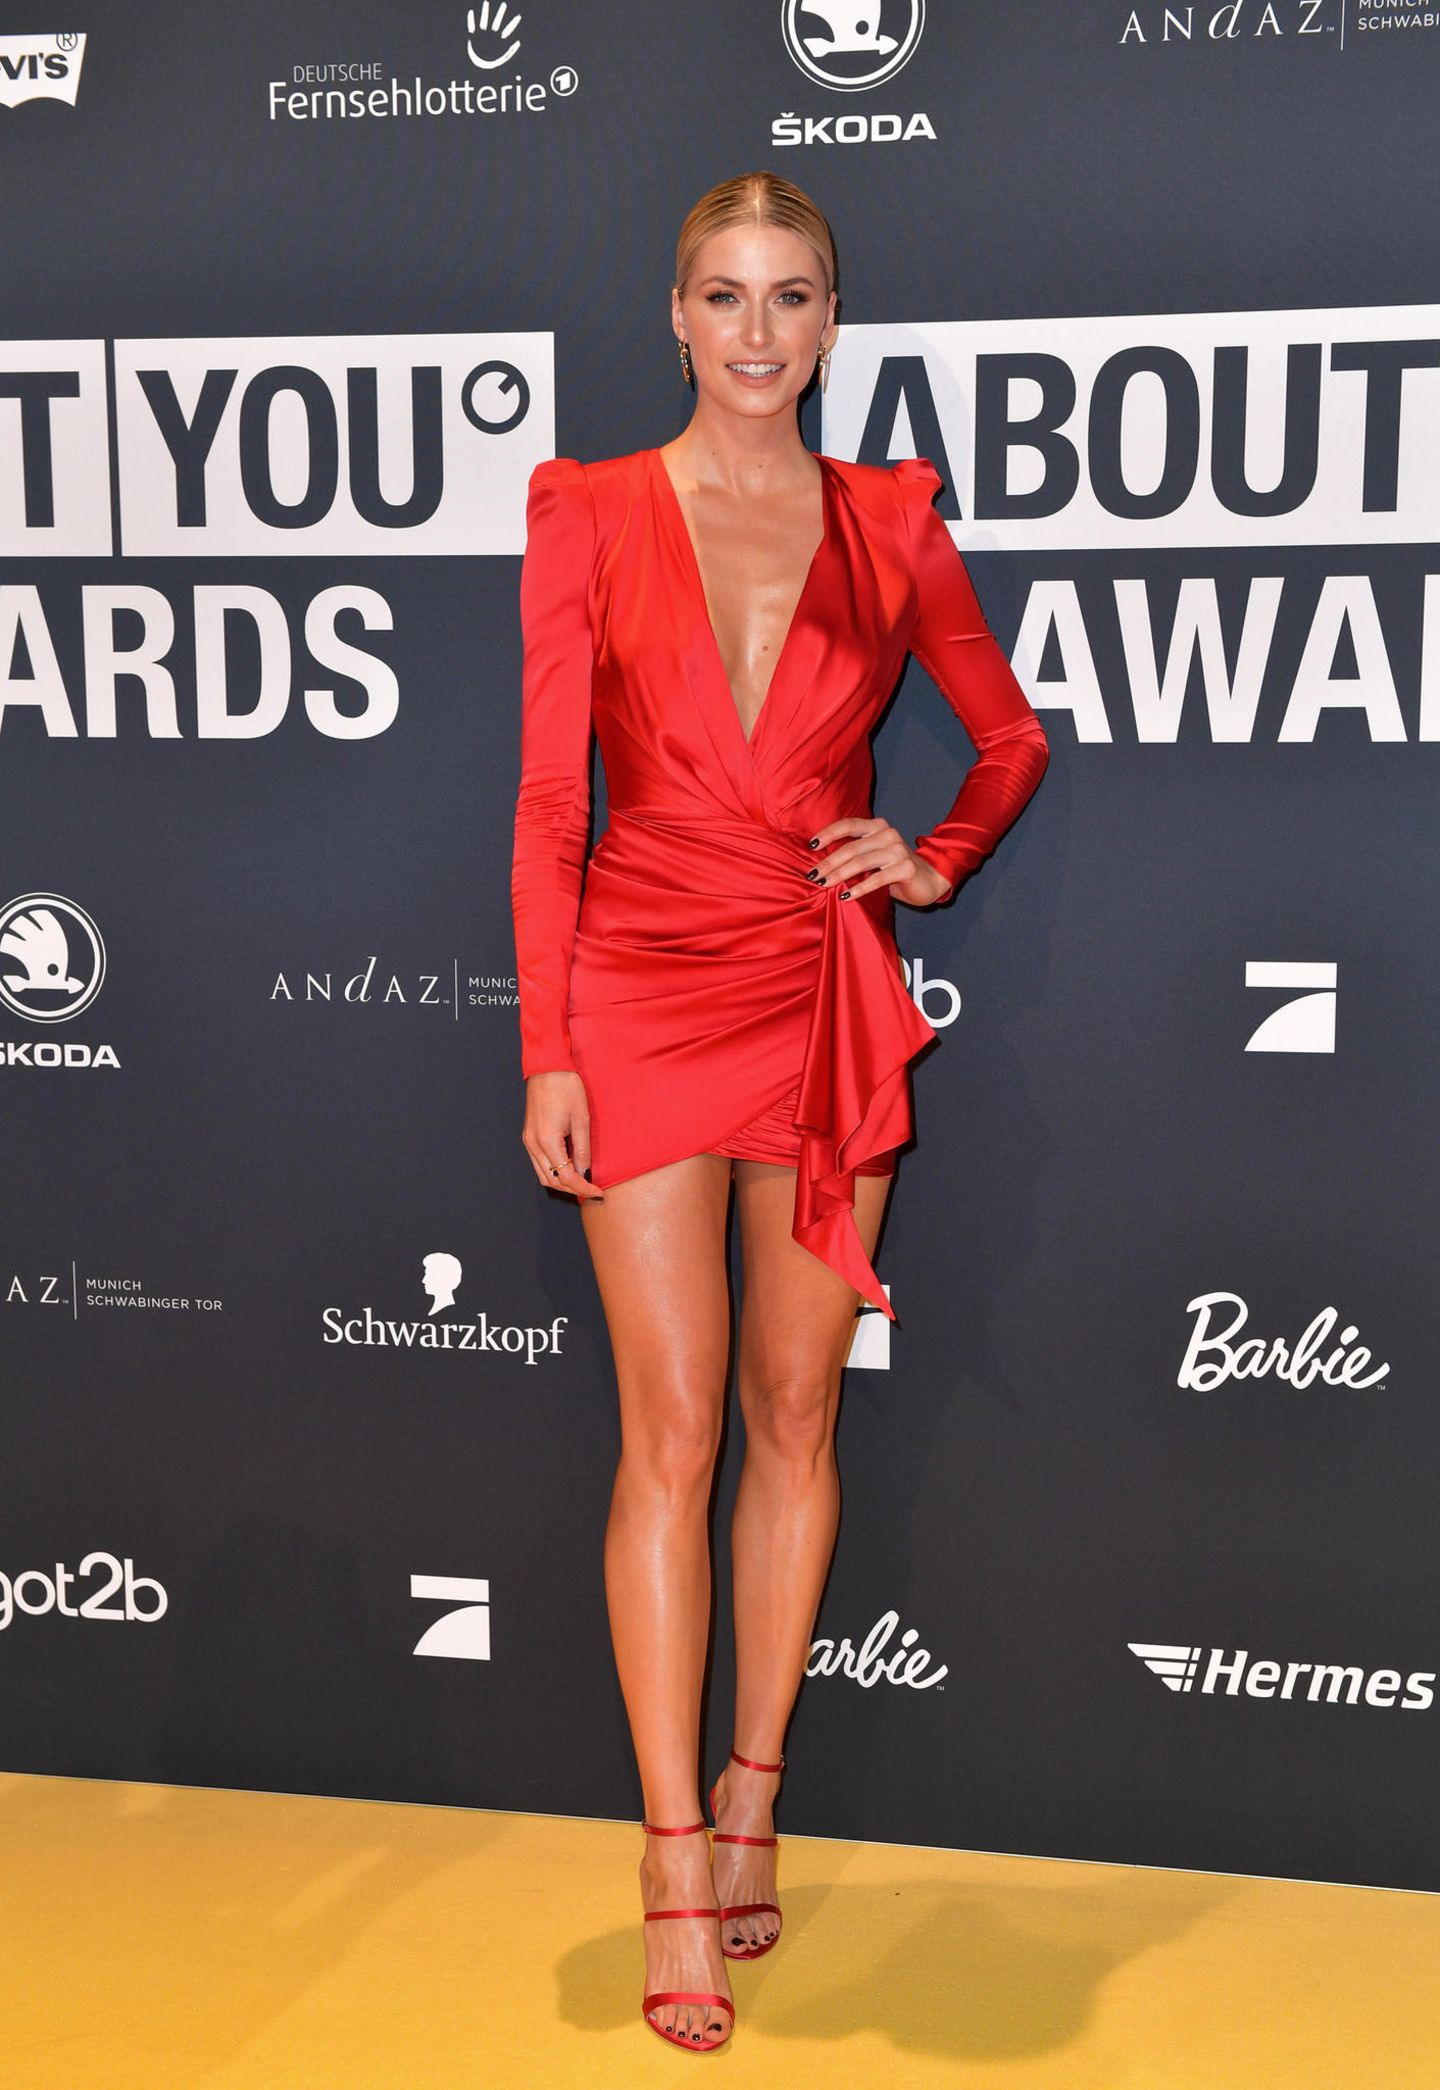 Lady in Red: Model Lena Gercke zeigt sich super hot in einem Kleid von Alexandre Vauthier auf dem Red Carpet der About You Awards 2019.